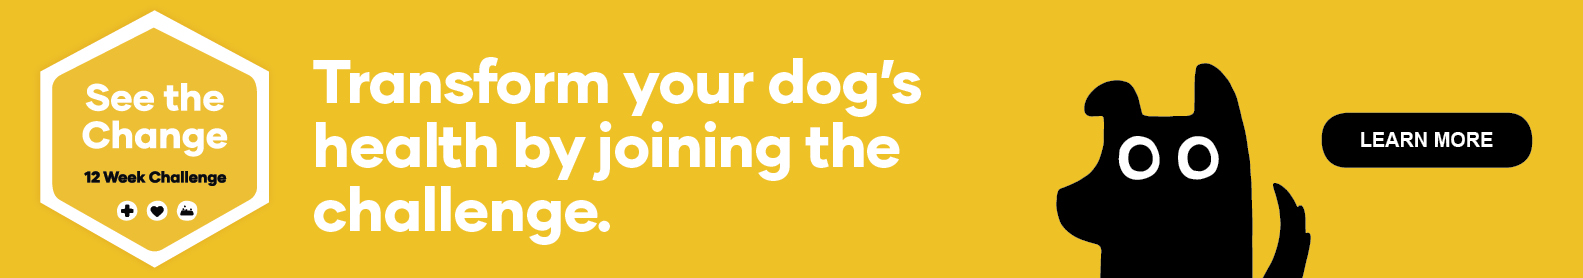 See the change - 12 week challenge. Transform your dog's health by joining the challenge.